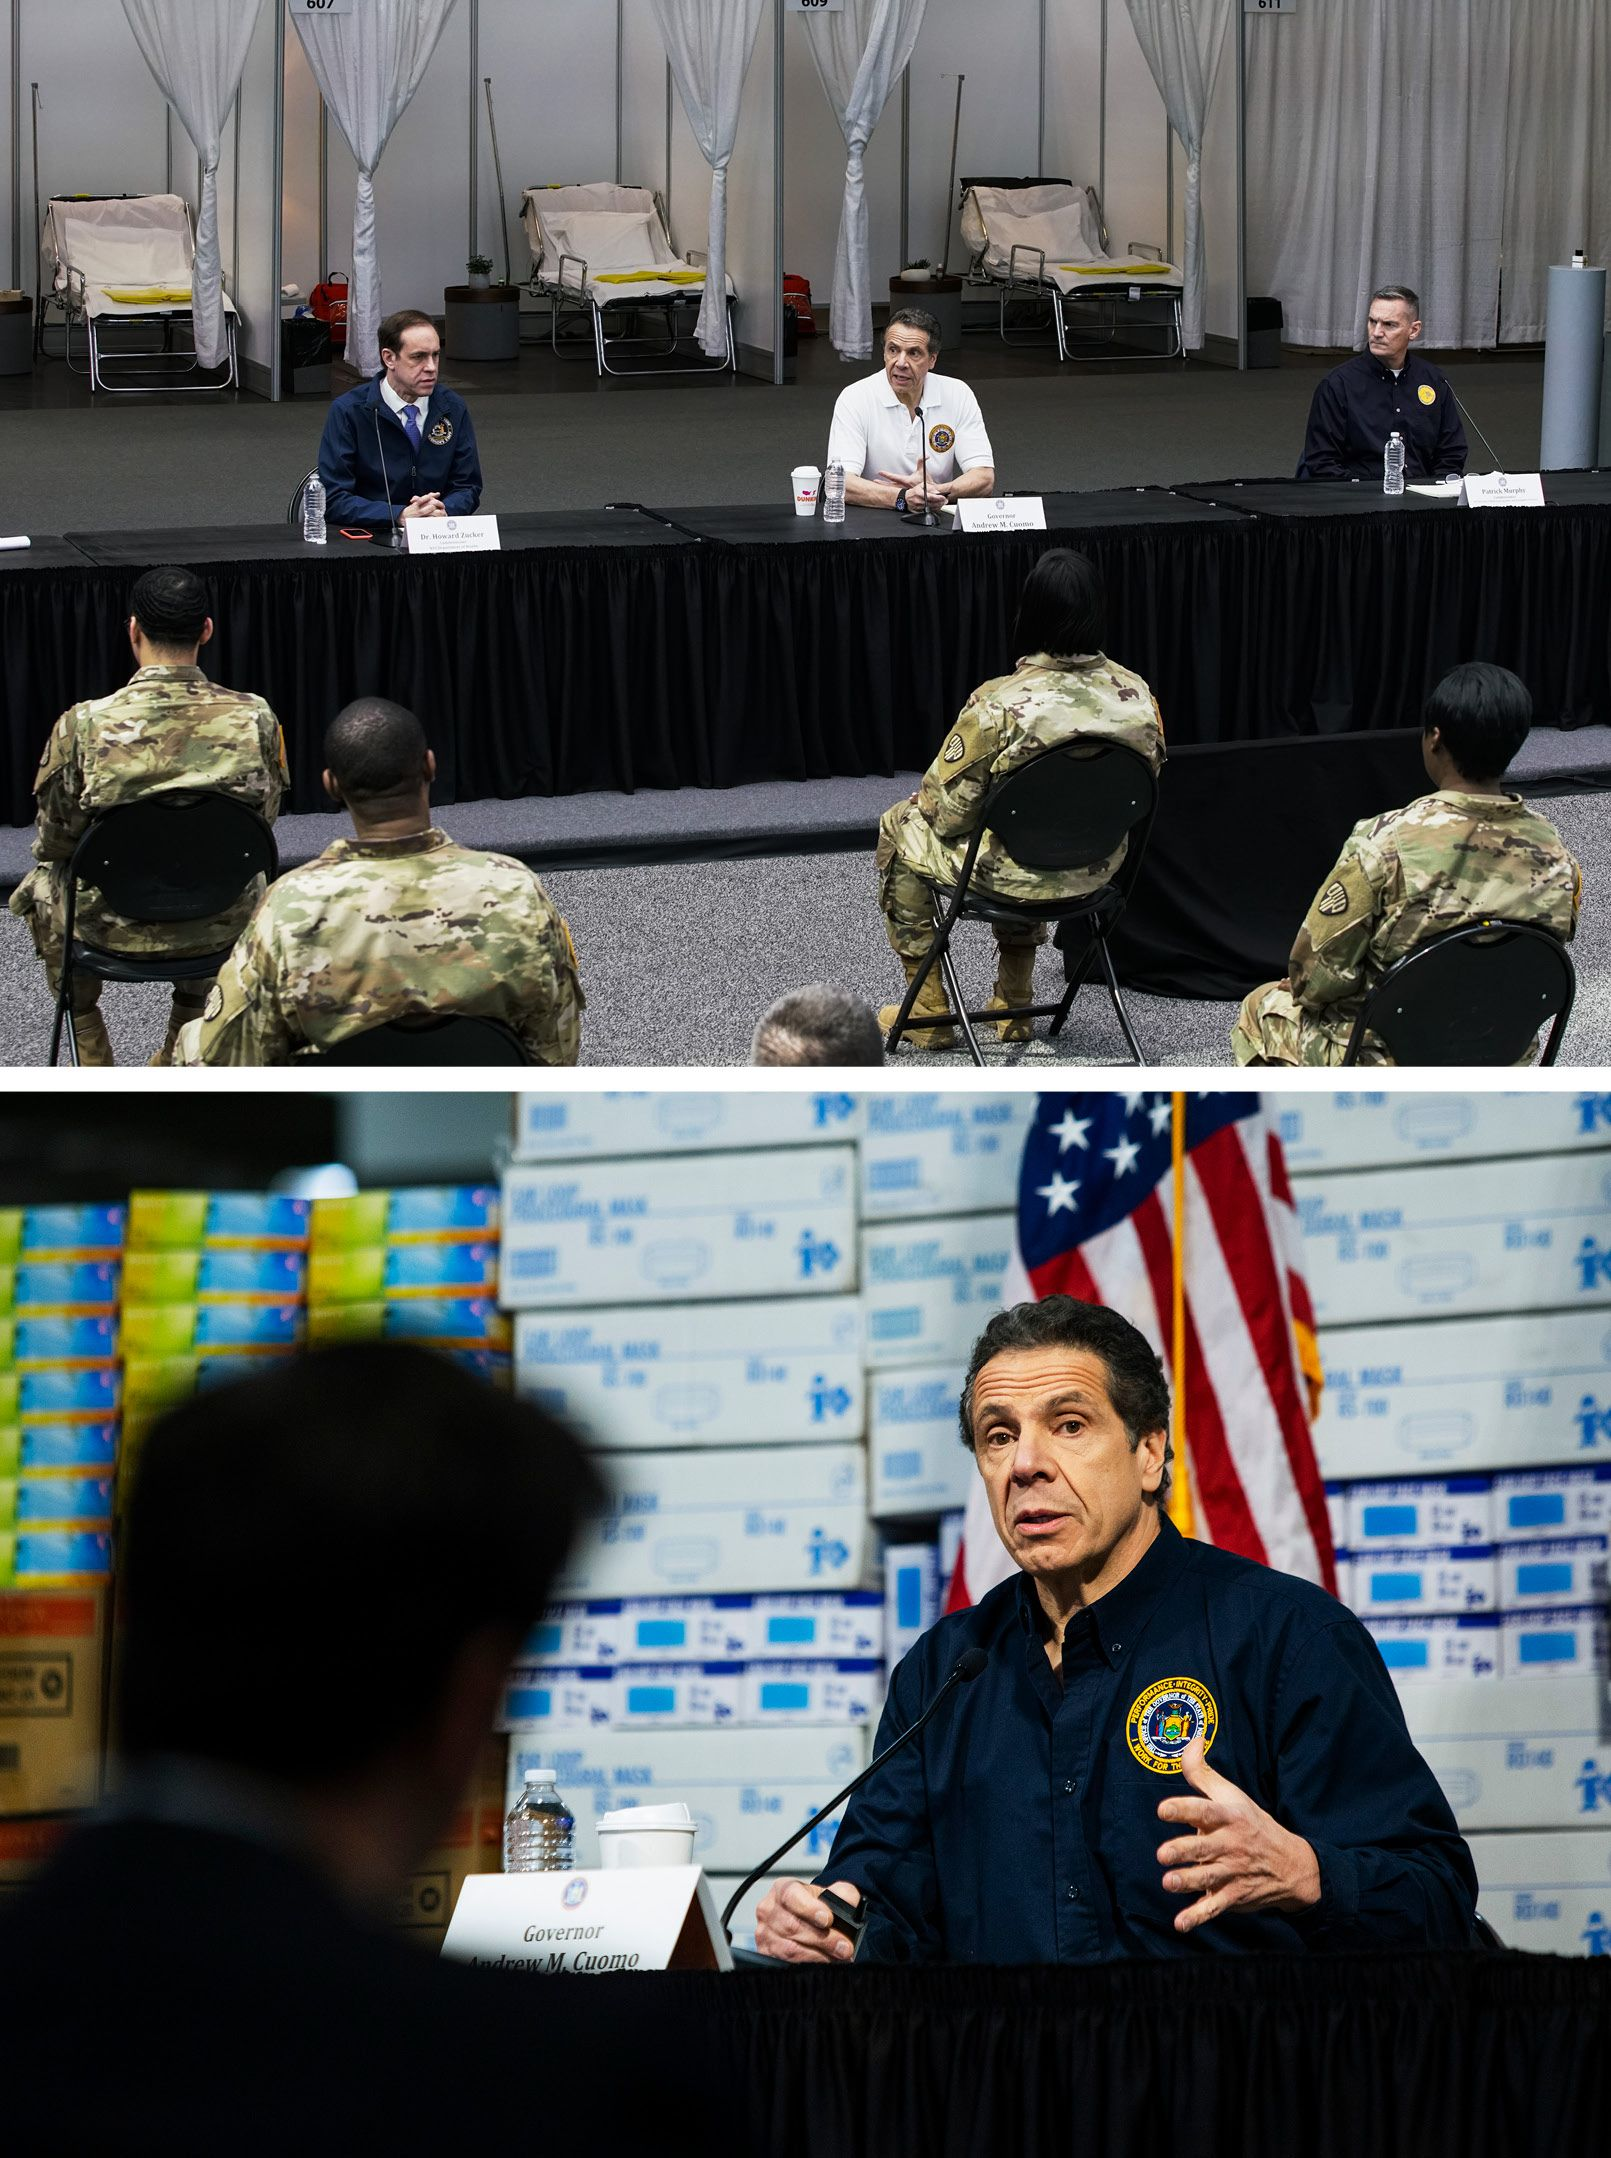 I Just Hope This Thing Ends Soon So I Can Go Back To Hating Andrew Cuomo Again In 2020 Andrew Cuomo Spring Break Planning Jackson Heights